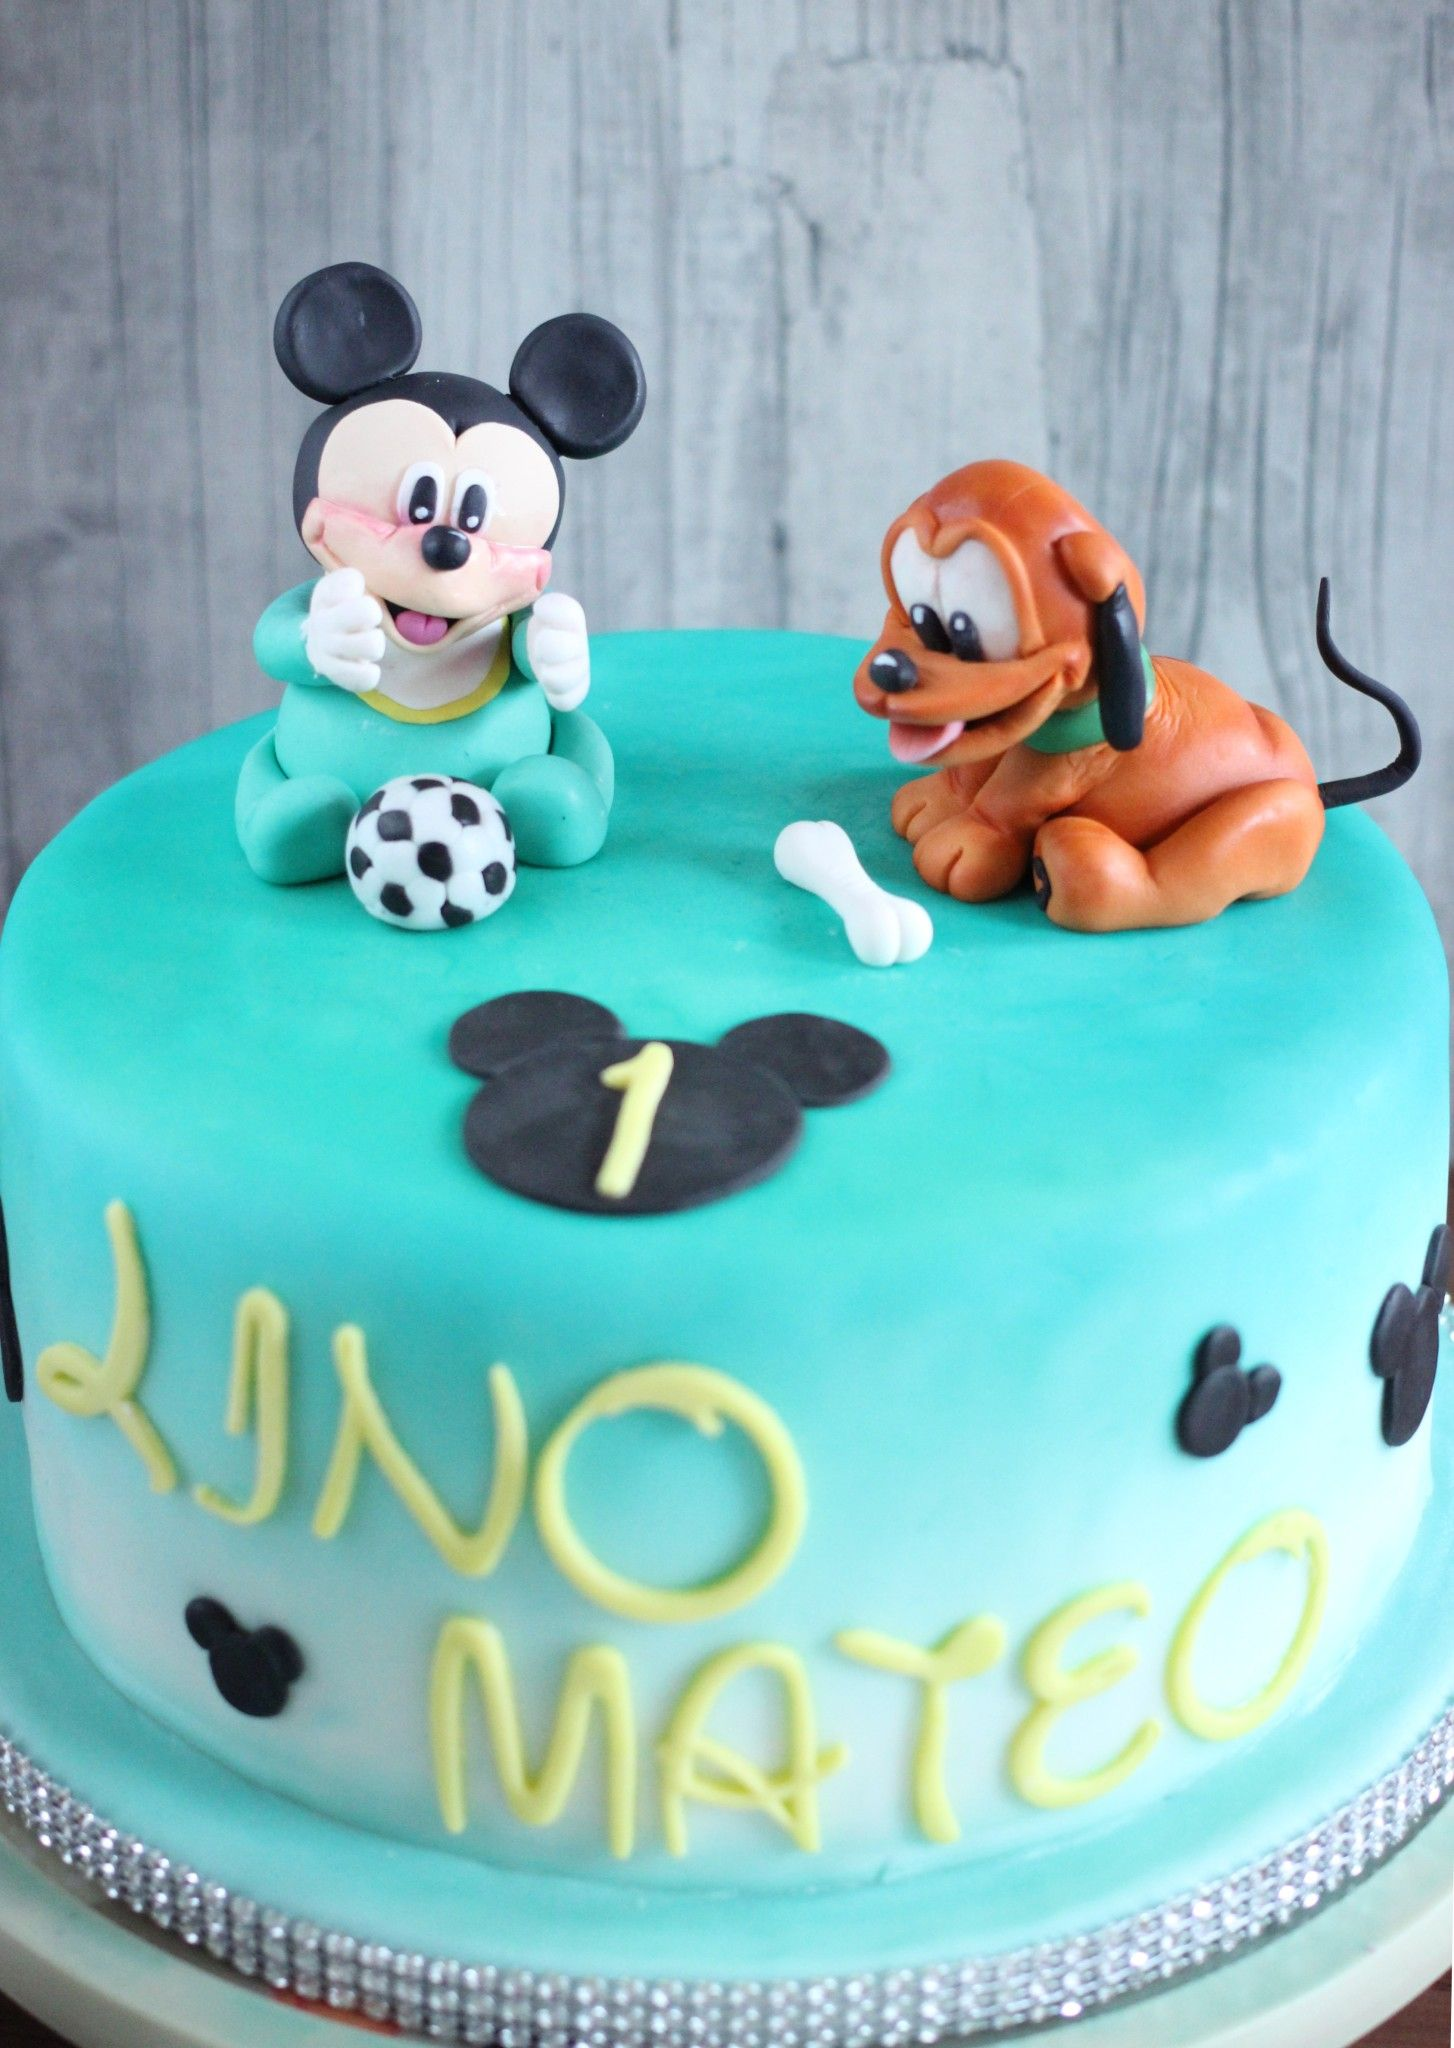 disney baby torte mickey und pluto zum 1 geburtstag disney babys torten pinterest. Black Bedroom Furniture Sets. Home Design Ideas